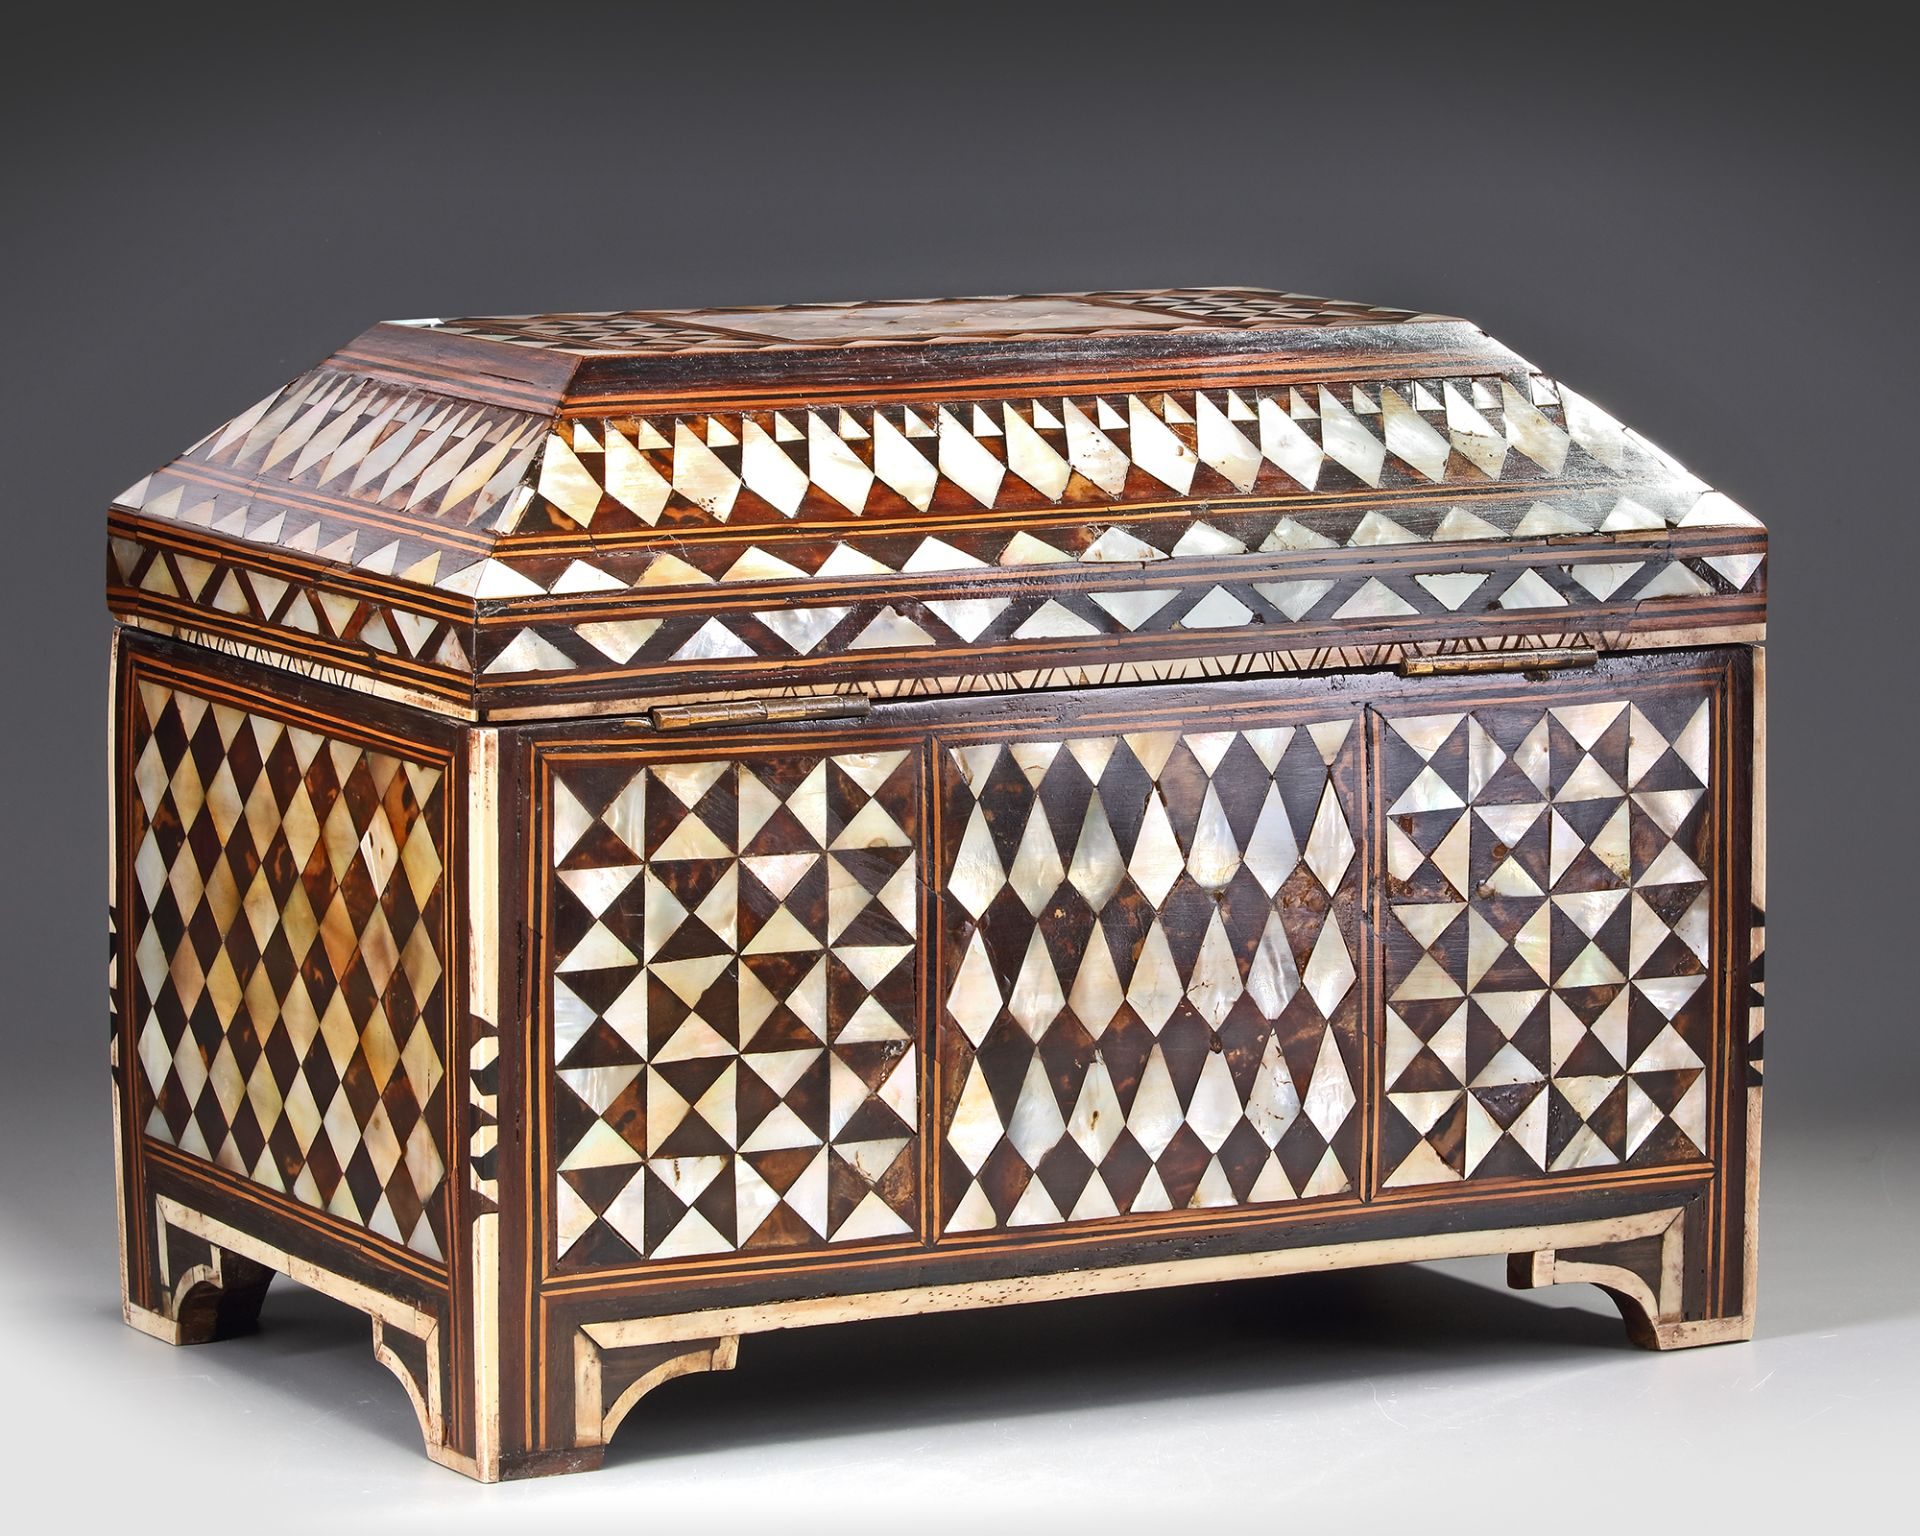 AN OTTOMAN MOTHER-OF-PEARL AND TORTOISESHELL INLAID CHEST - Bild 3 aus 3